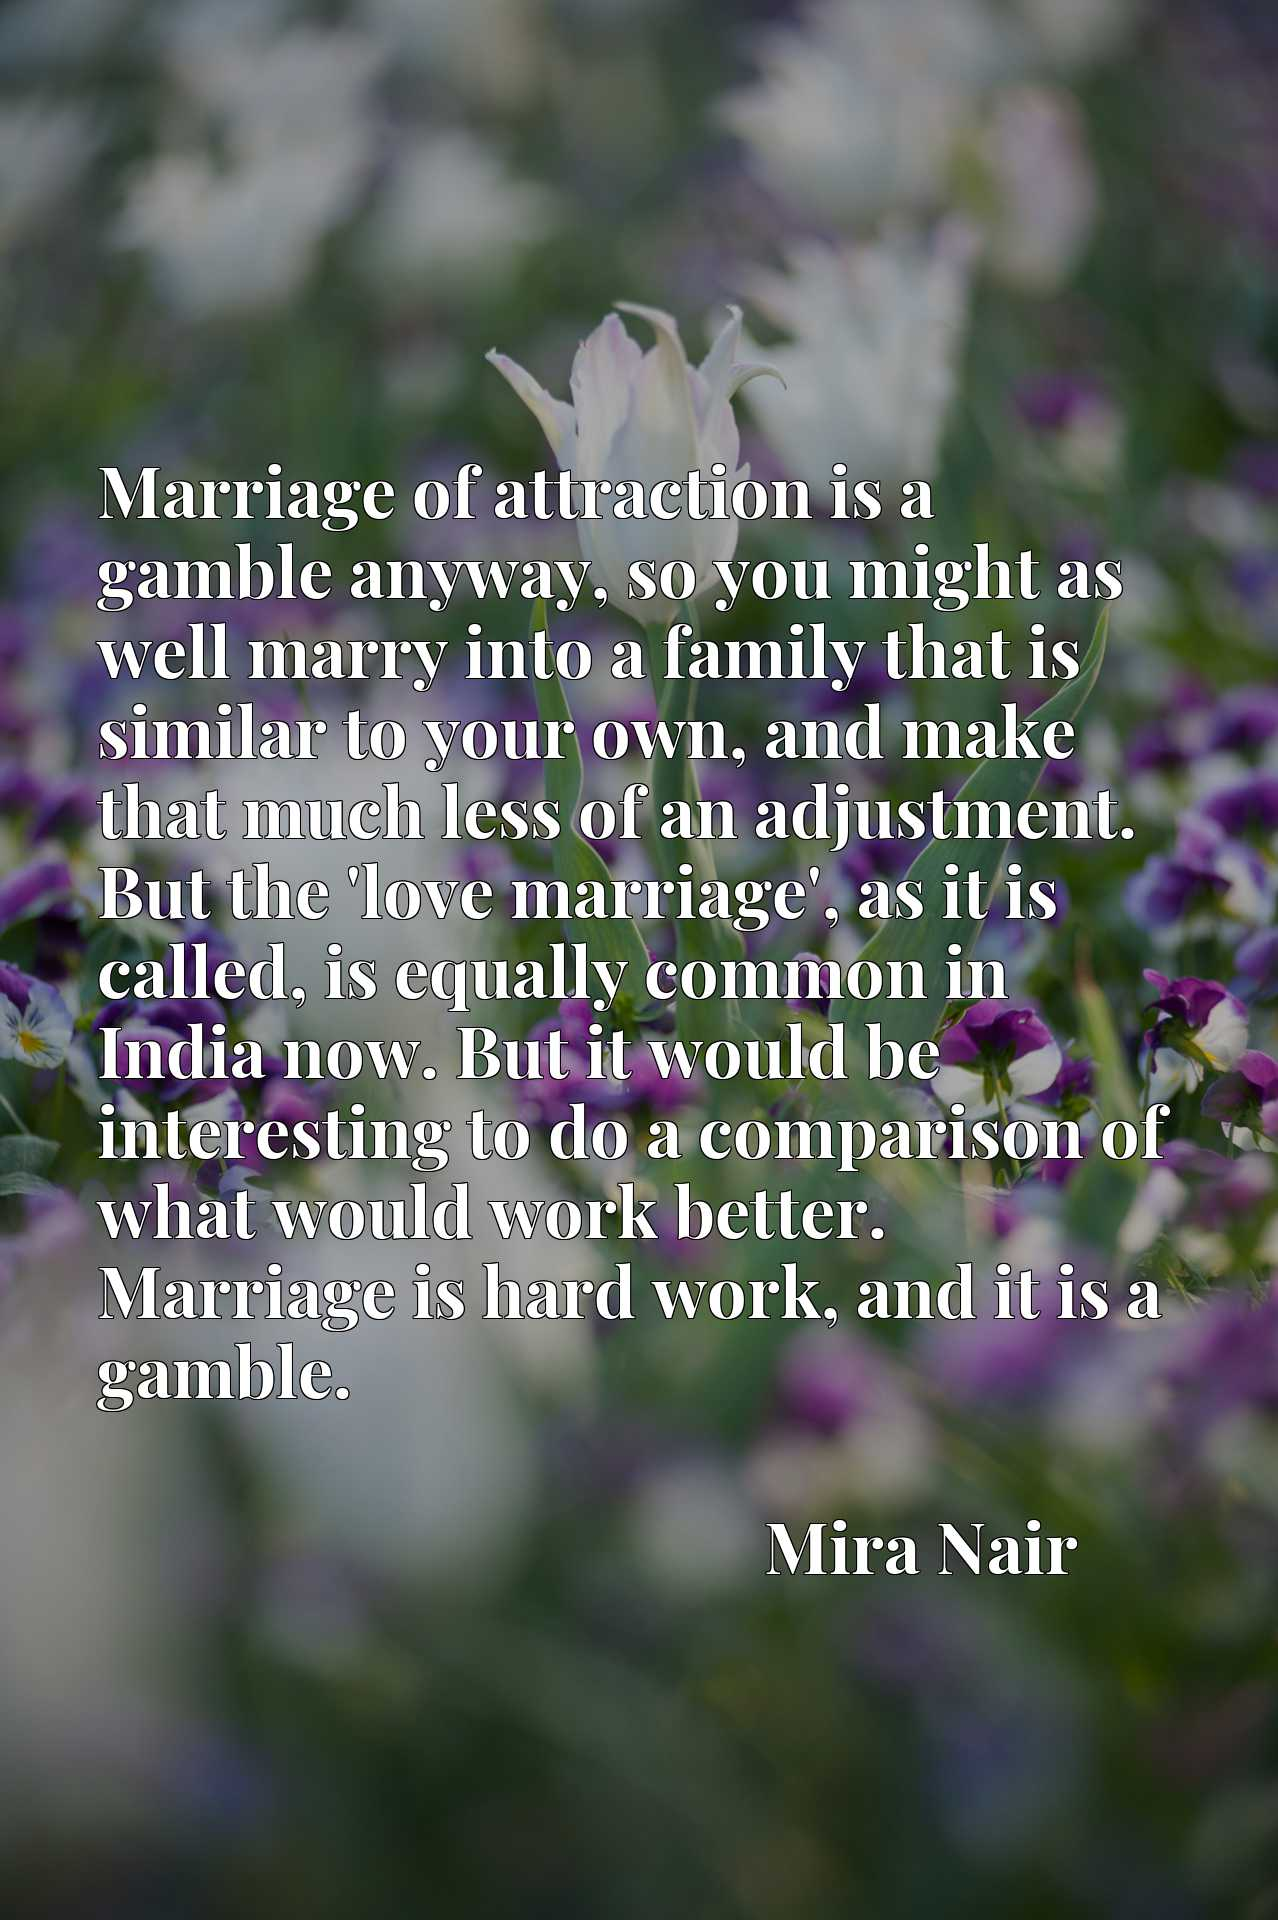 Marriage of attraction is a gamble anyway, so you might as well marry into a family that is similar to your own, and make that much less of an adjustment. But the 'love marriage', as it is called, is equally common in India now. But it would be interesting to do a comparison of what would work better. Marriage is hard work, and it is a gamble.